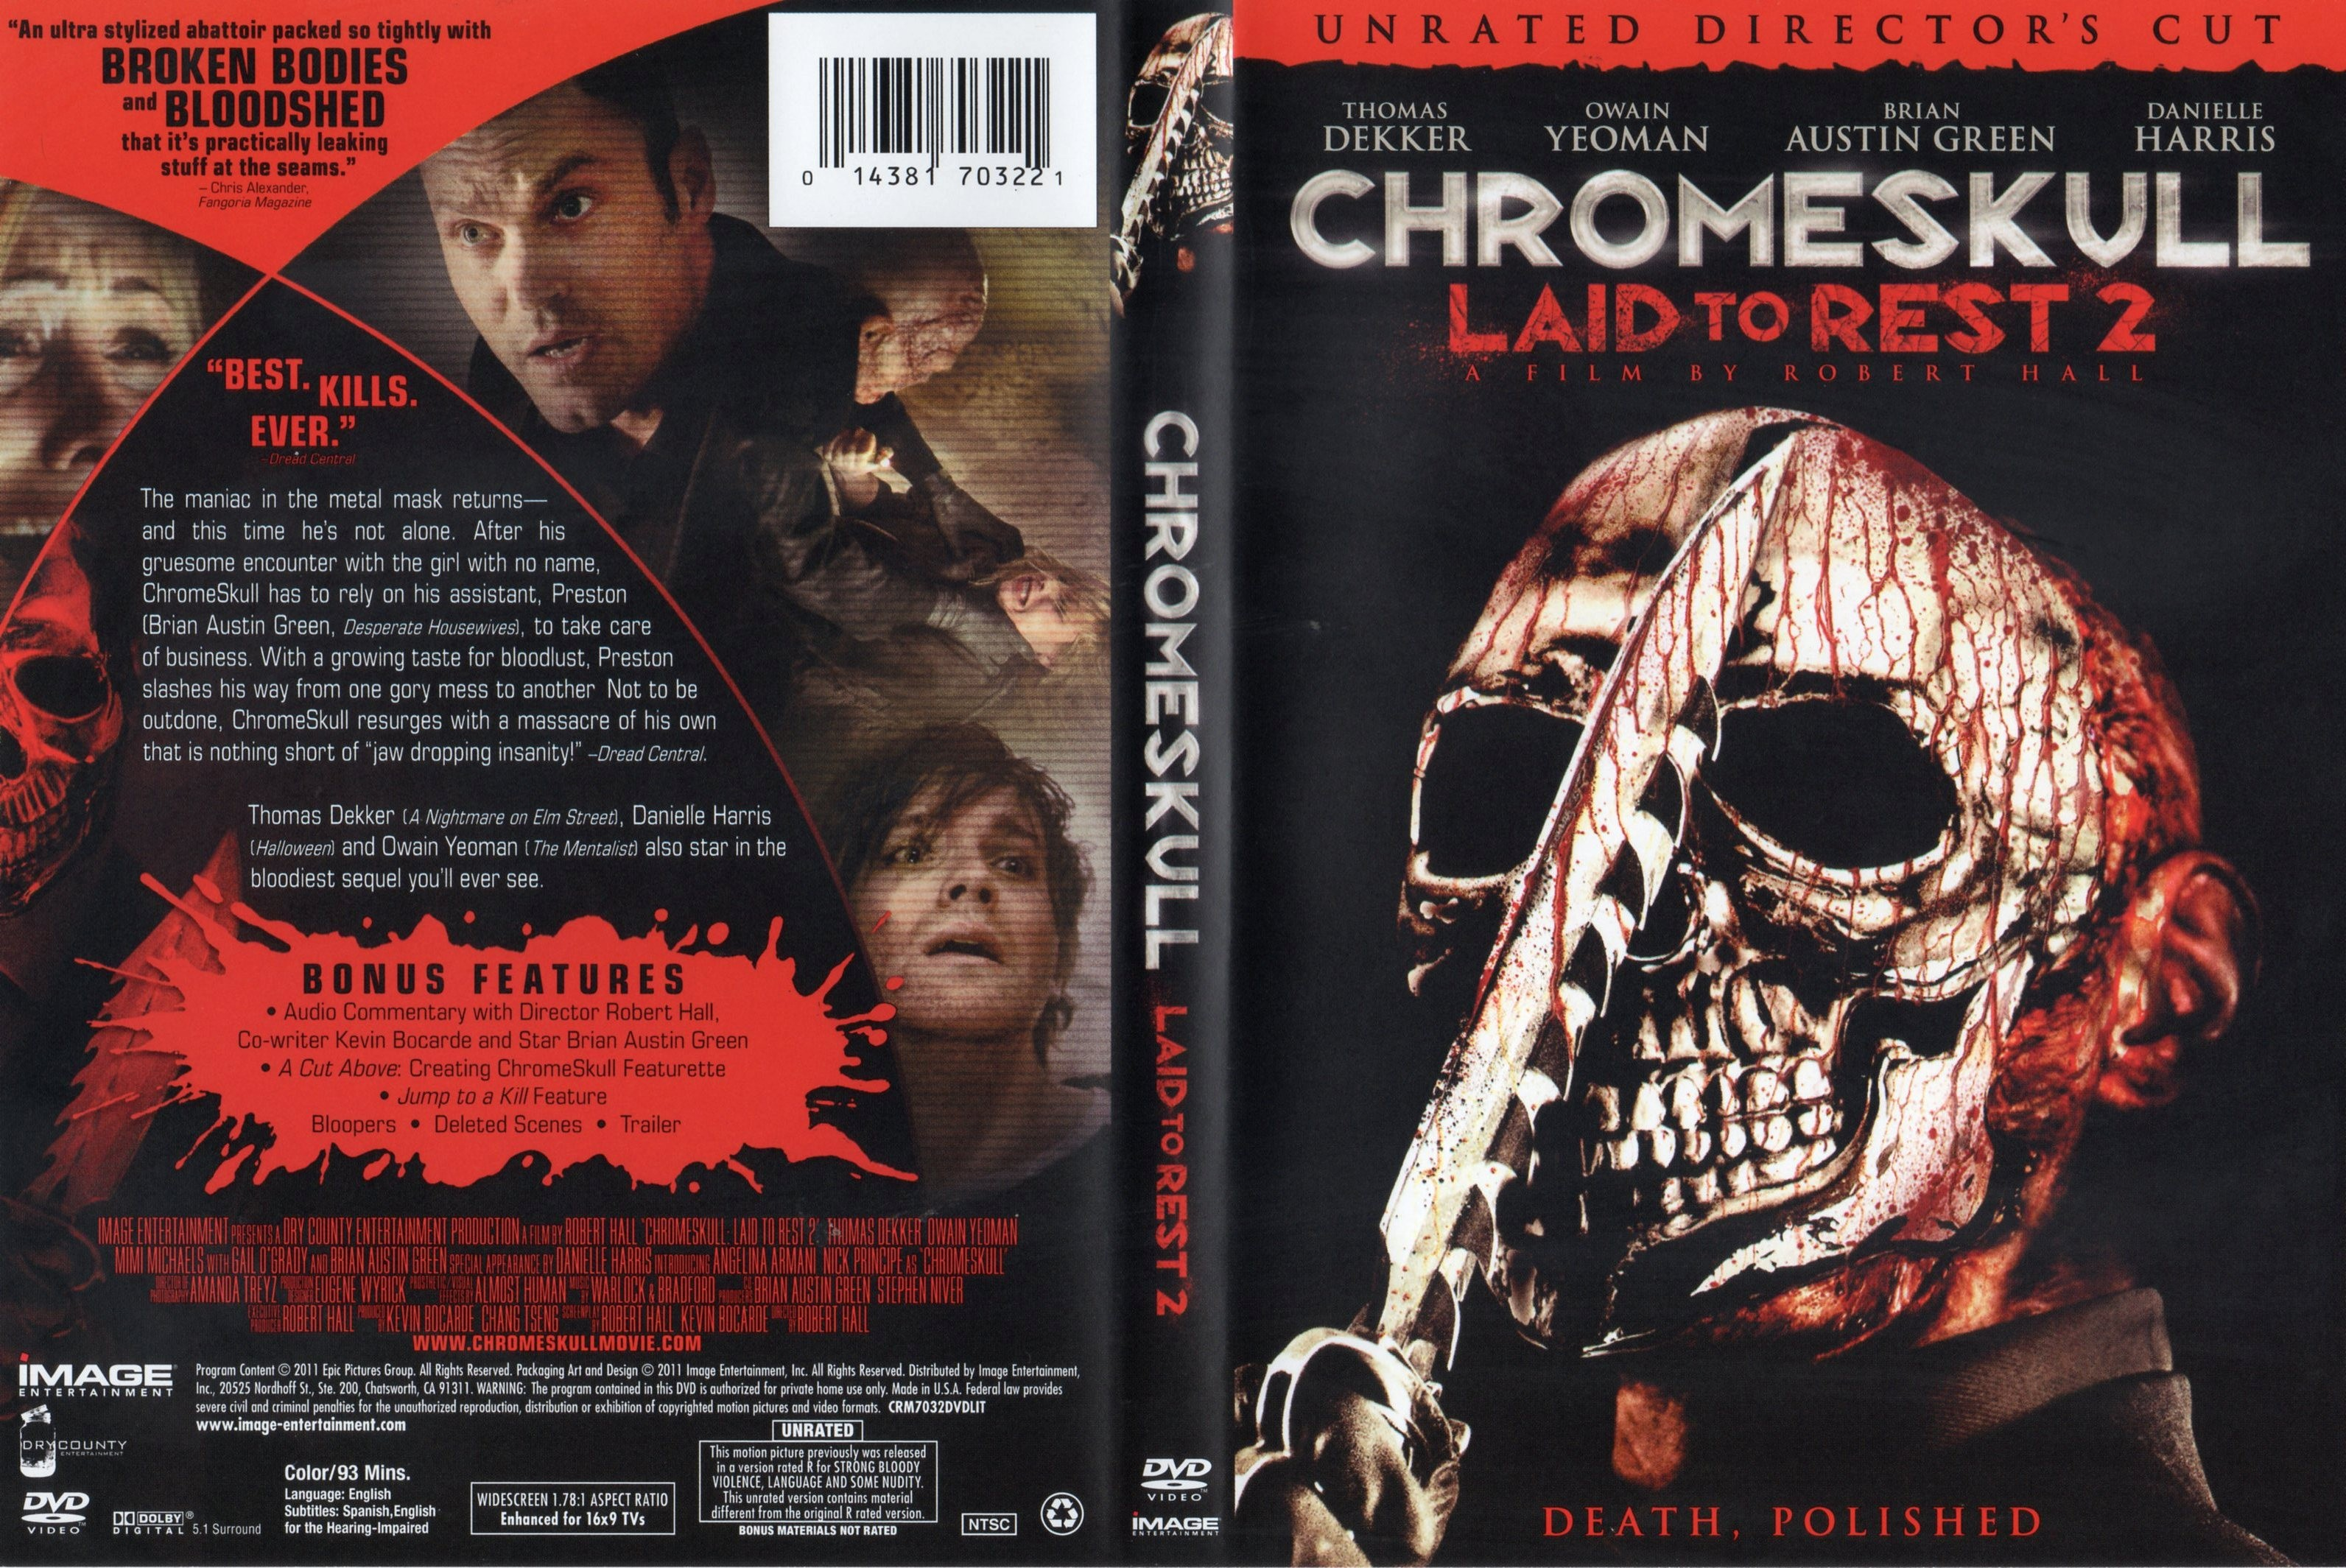 covers box sk chromeskull laid to rest 2 2011 high quality